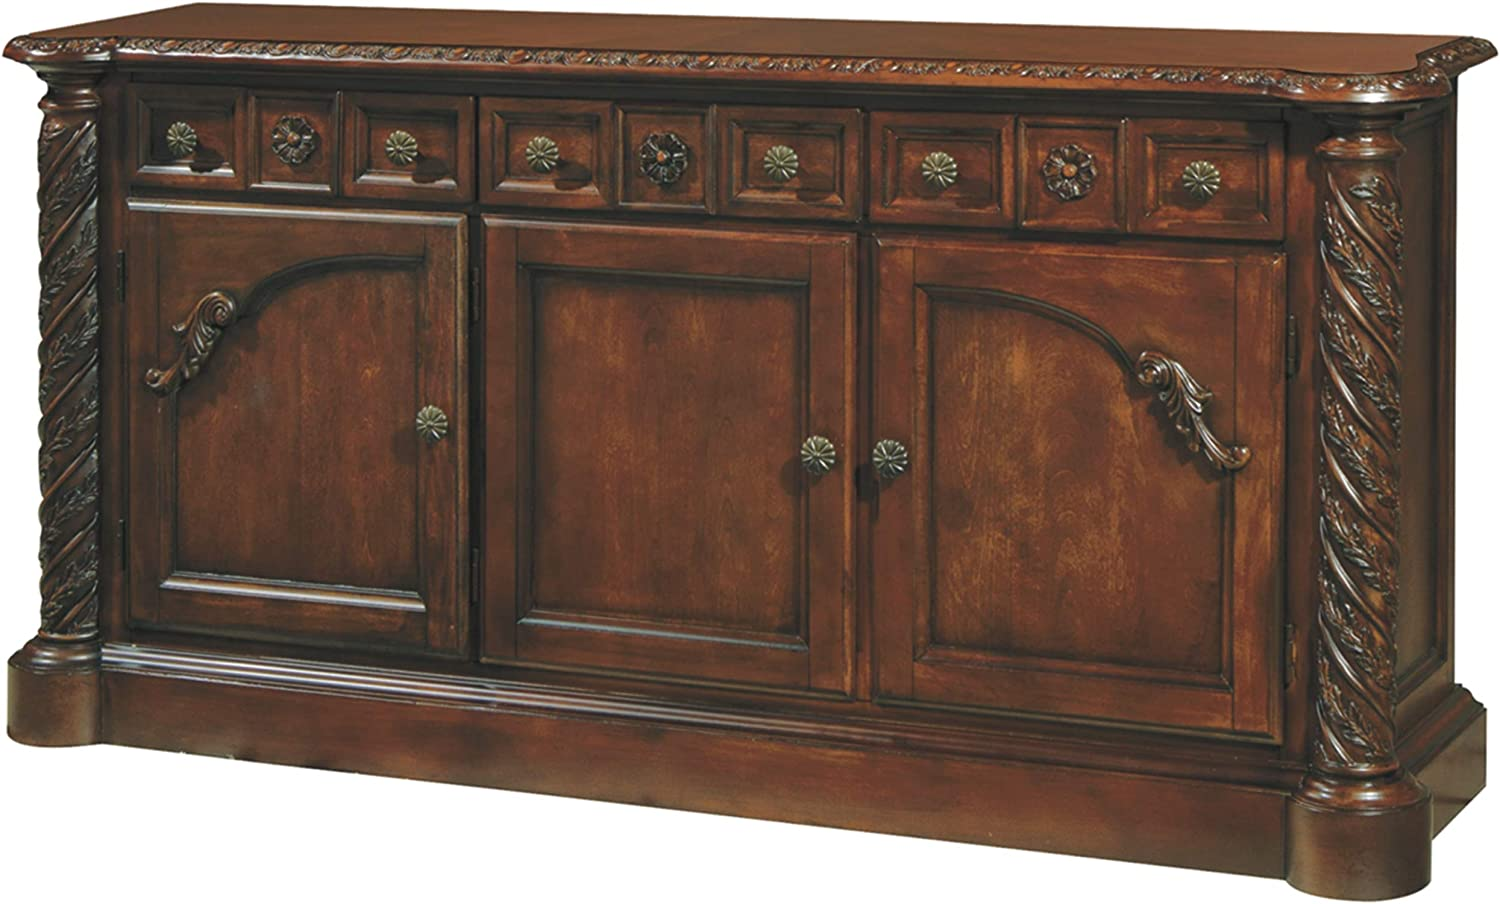 Signature Design By Ashley - North Shore Dining Room Buffet - Traditional Style - Dark Brown